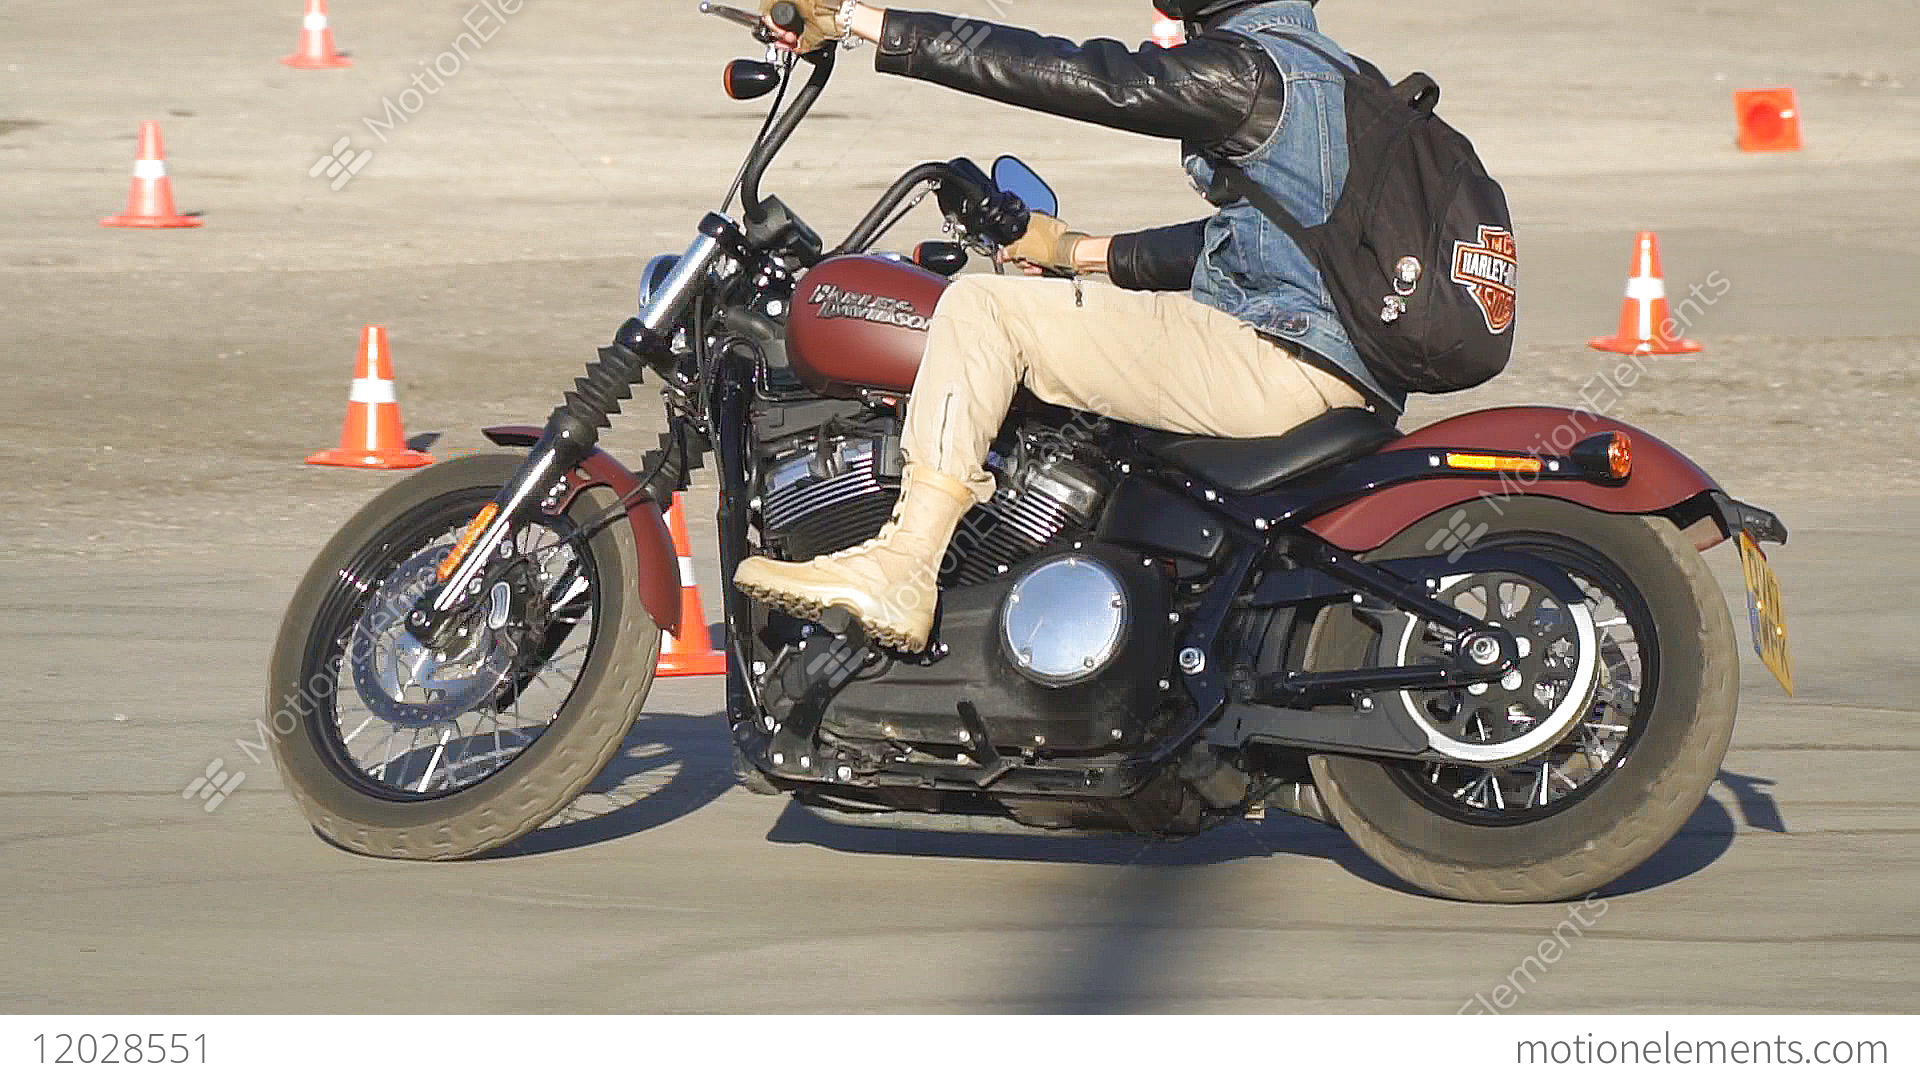 Motorcyclist Riding A Motorcycle Harley Davidson Stock Video Footage